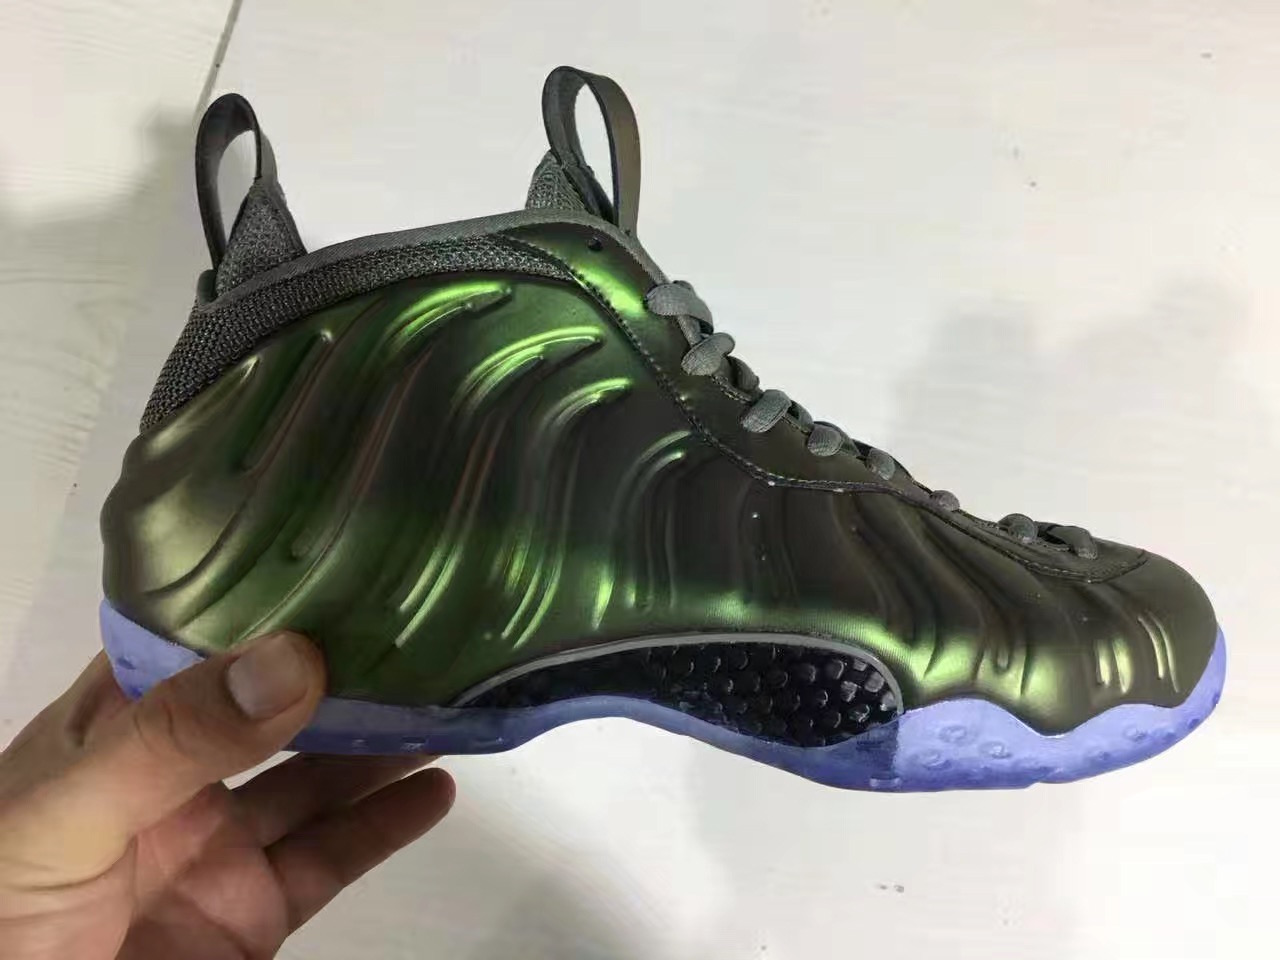 Nike Foamposite One Shine Dark Stucco AA3963-001